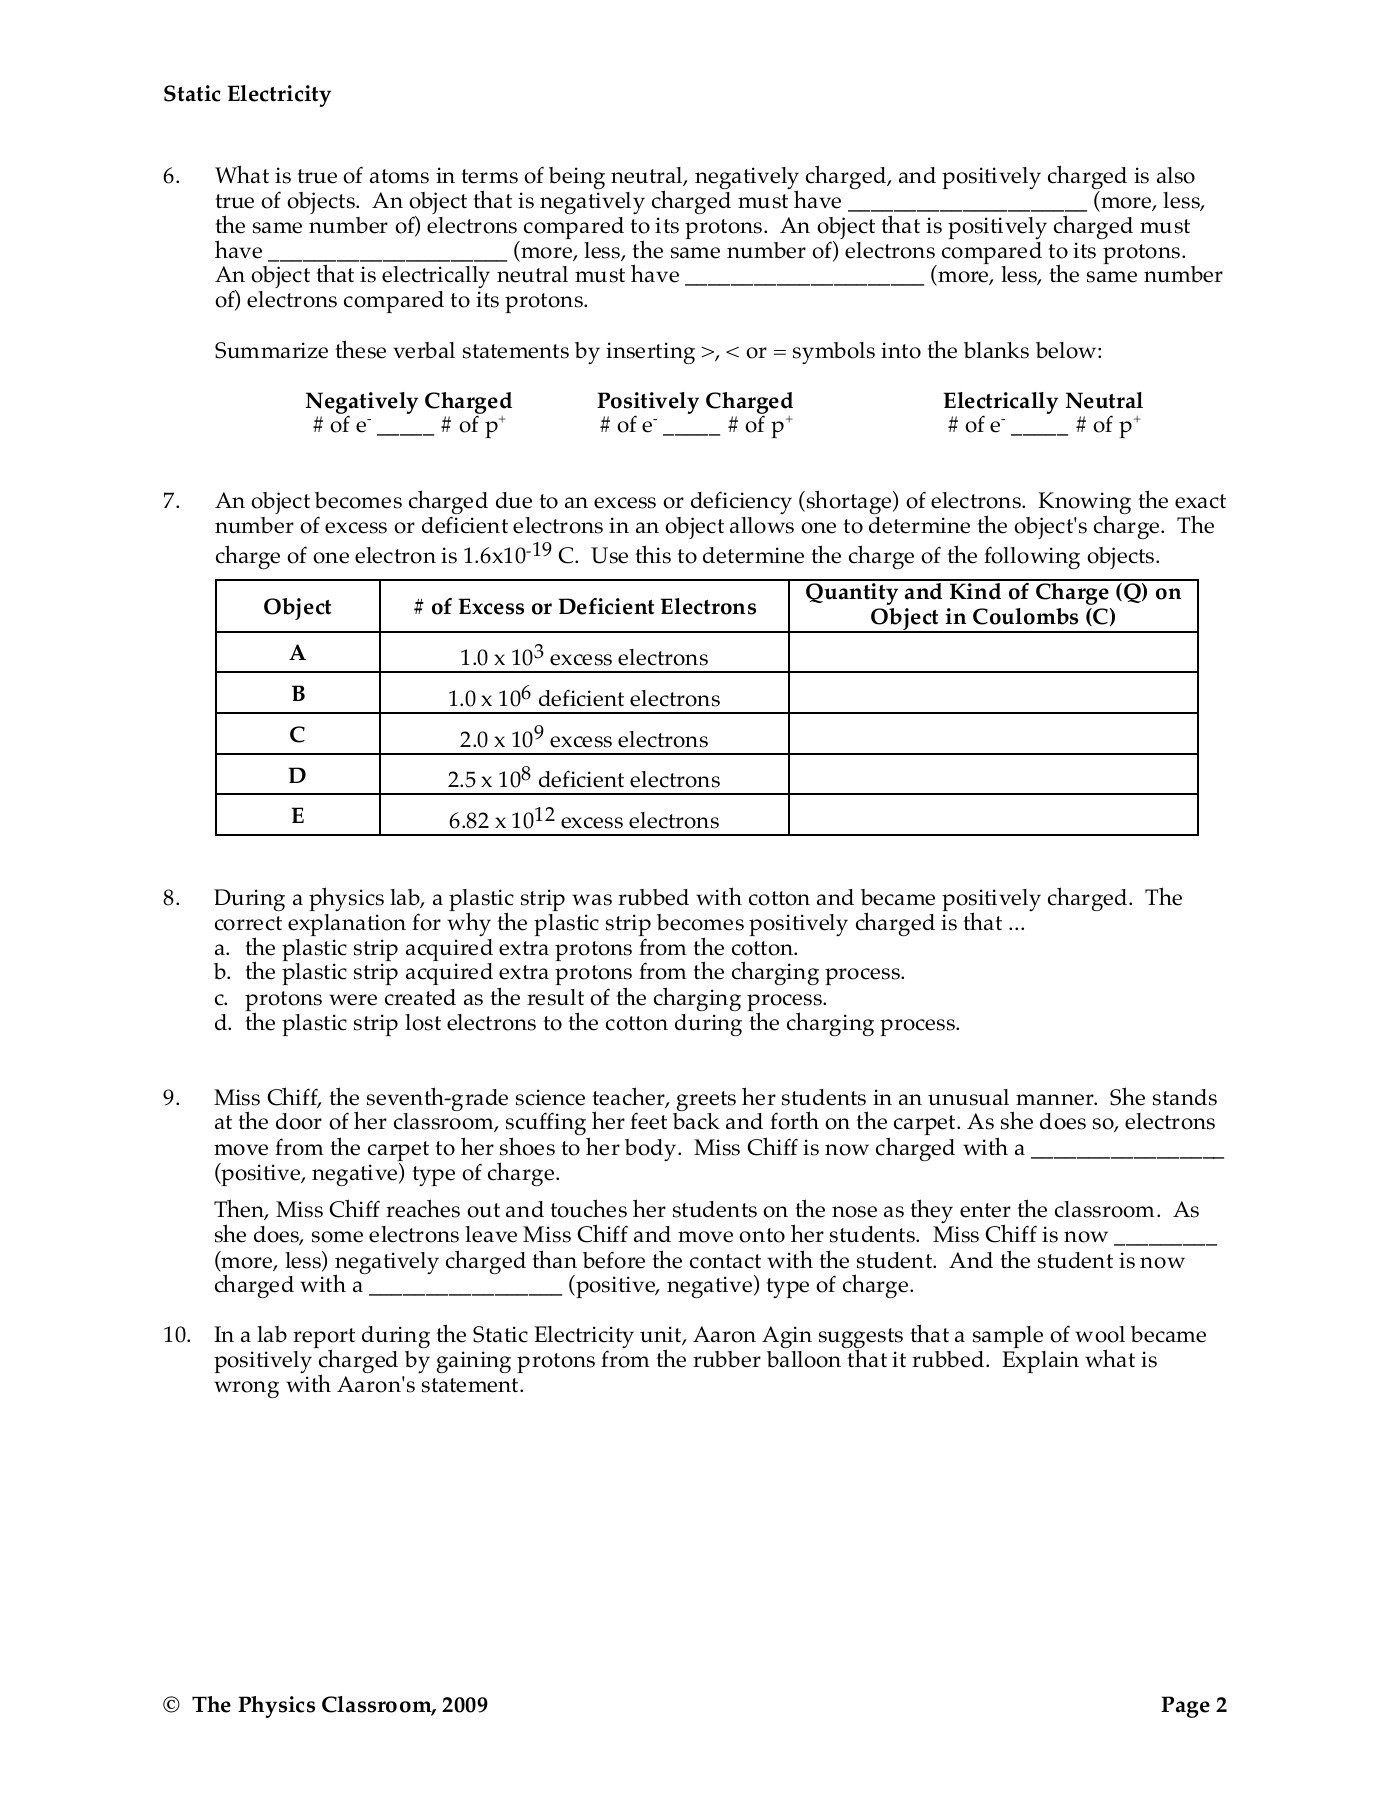 Static Electricity Worksheet Answers Charge Physics Pages 1 18 Text Version